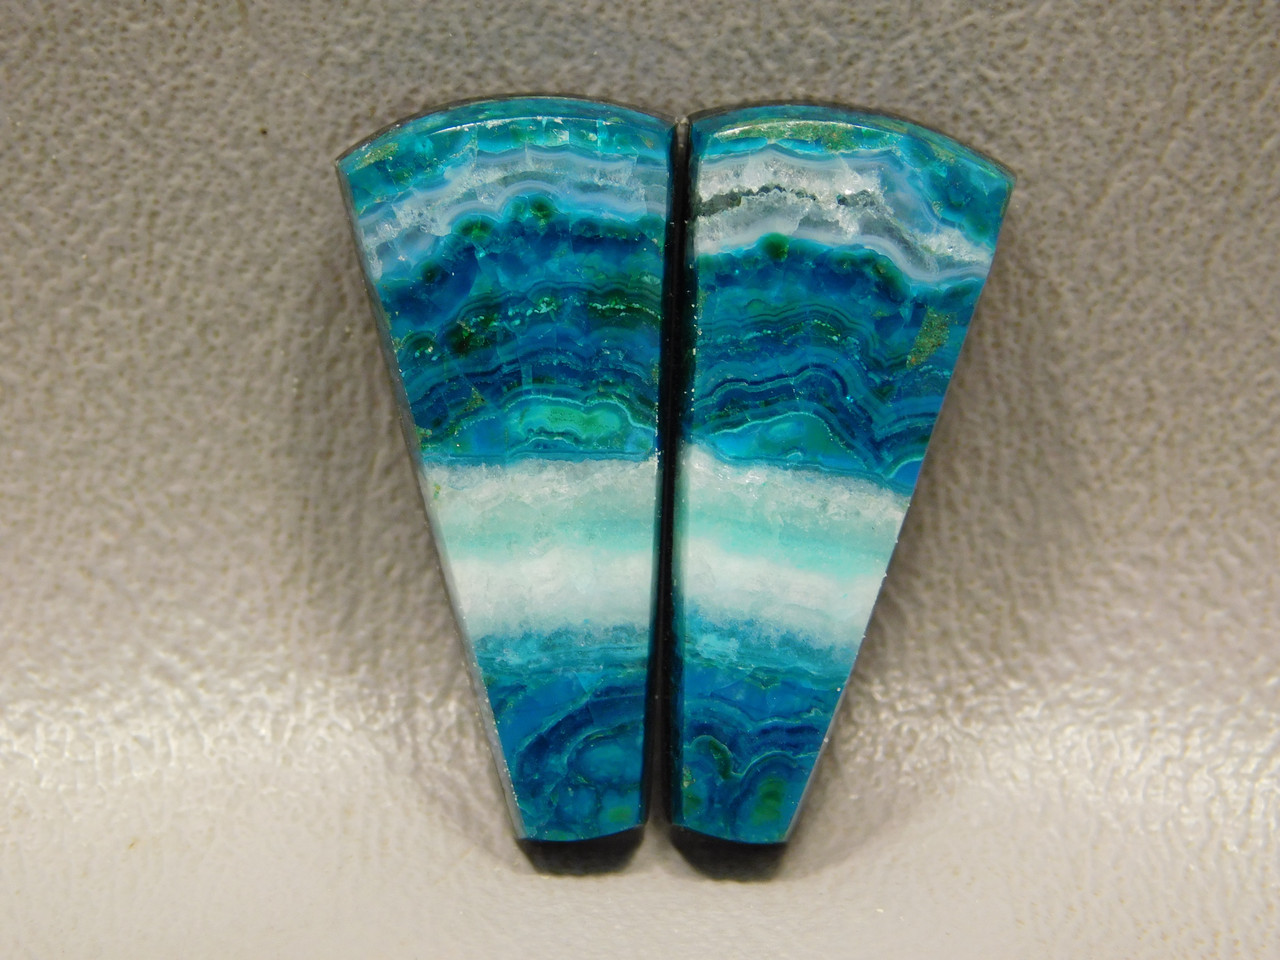 Chrysocolla Malachite Matched Pair Best Cabochons for Earrings #33